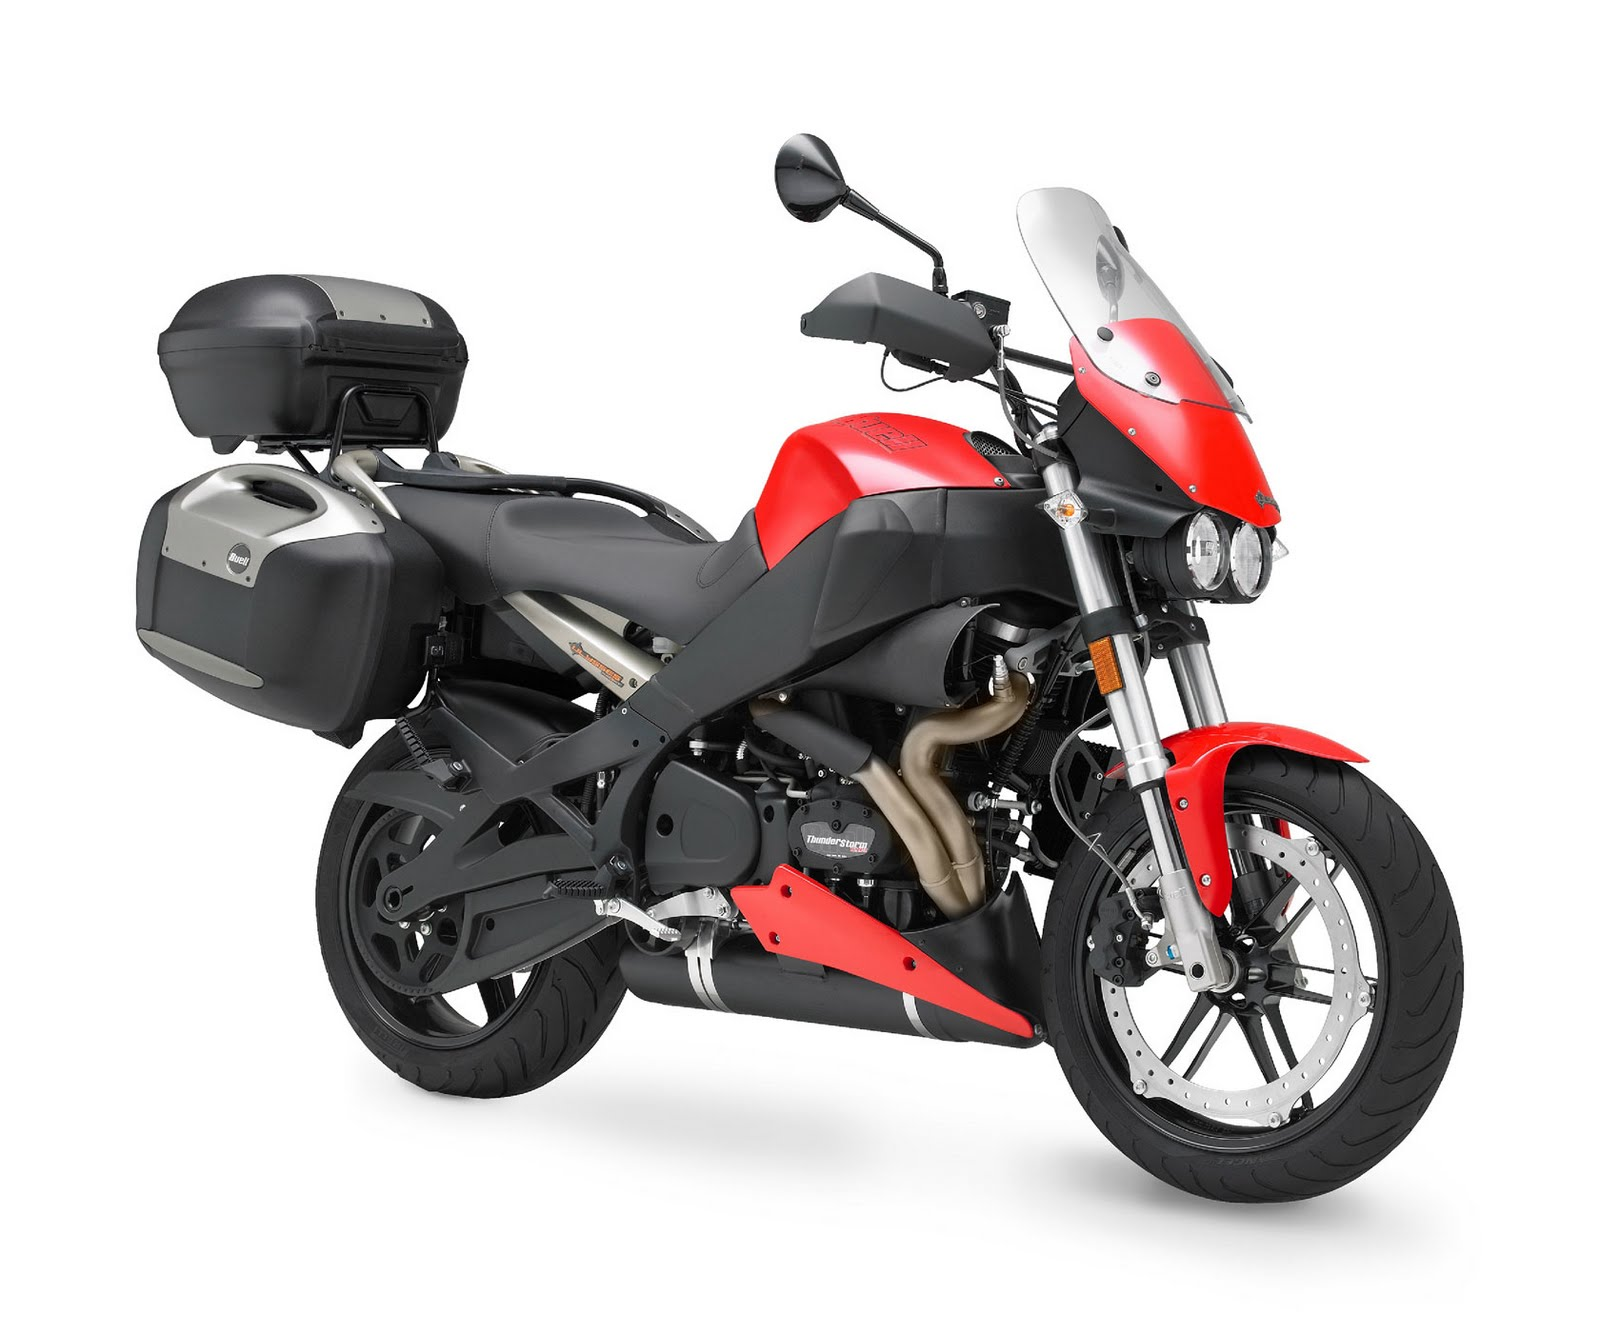 The Best Of Motorcycle 2010 Buell Ulysses Xb12xt